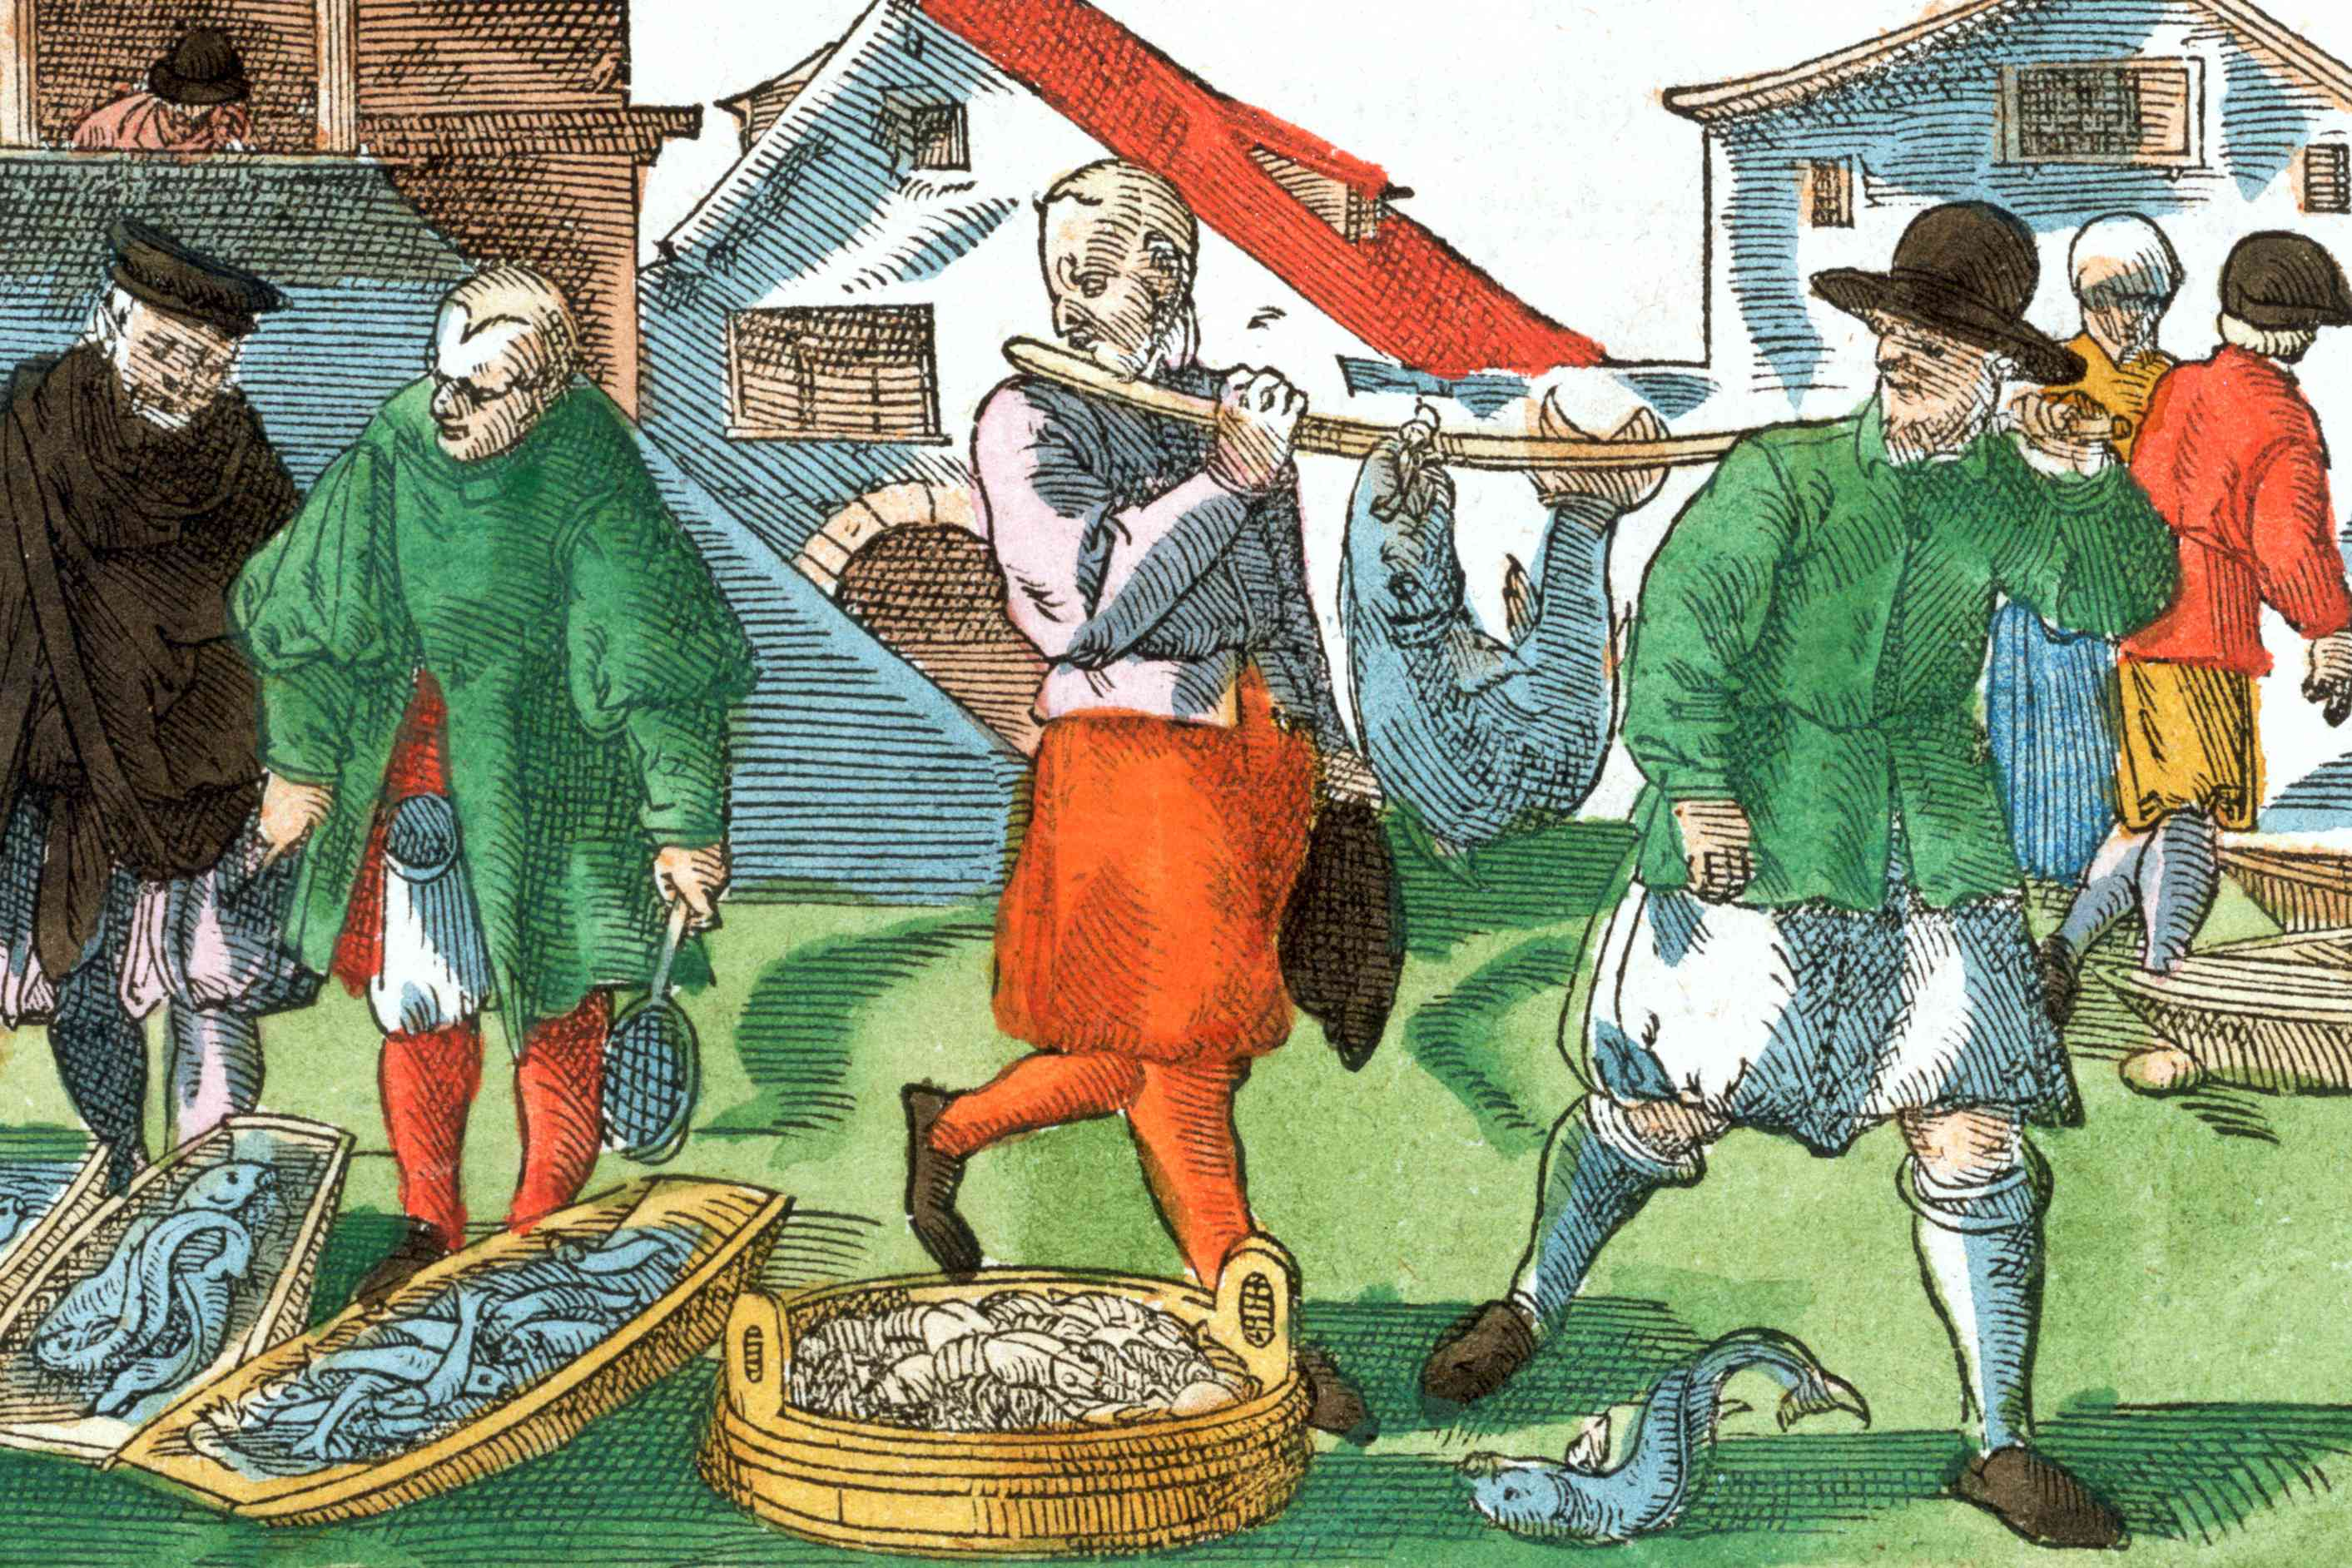 Men in breeches at a medieval fish market